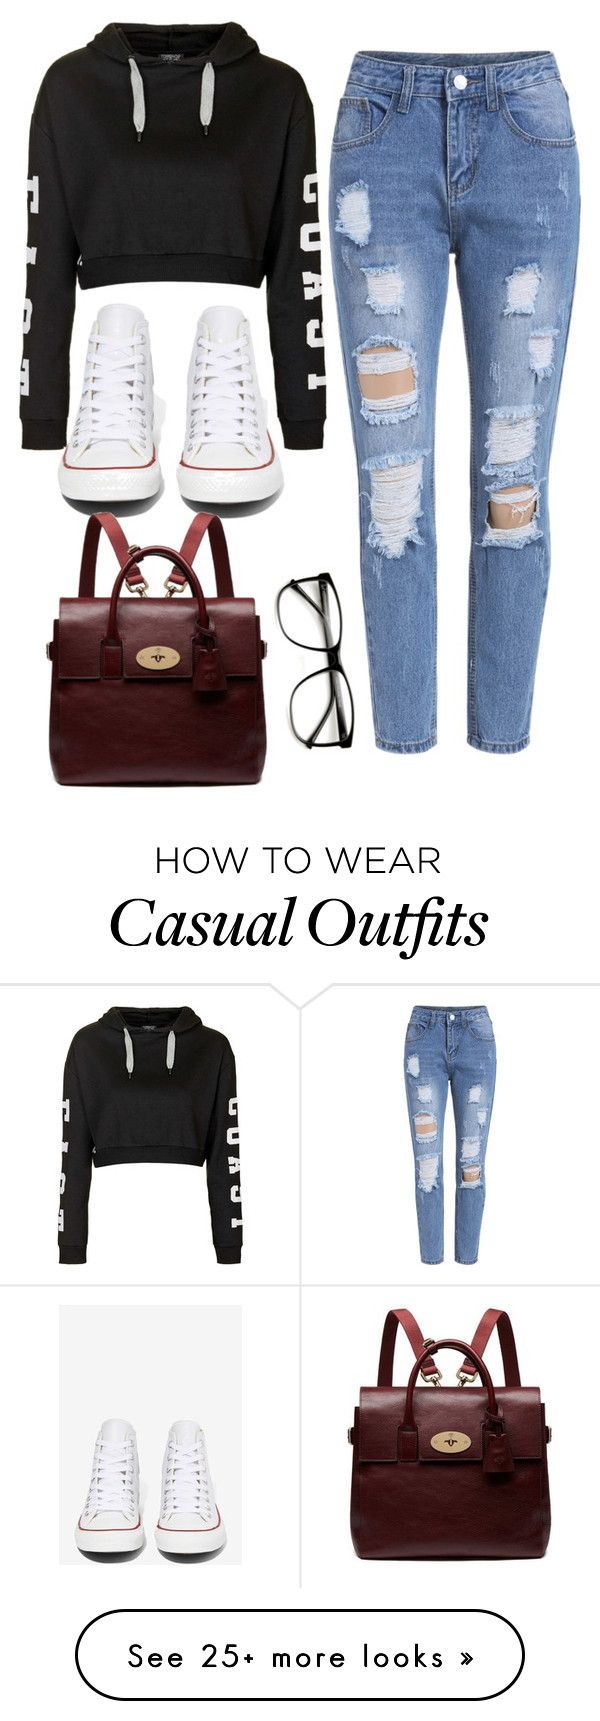 """cool and casual"" by ruthjauregui on Polyvore featuring Topshop, Converse, Mulberry, women's clothing, women, female, woman, misses and juniors"